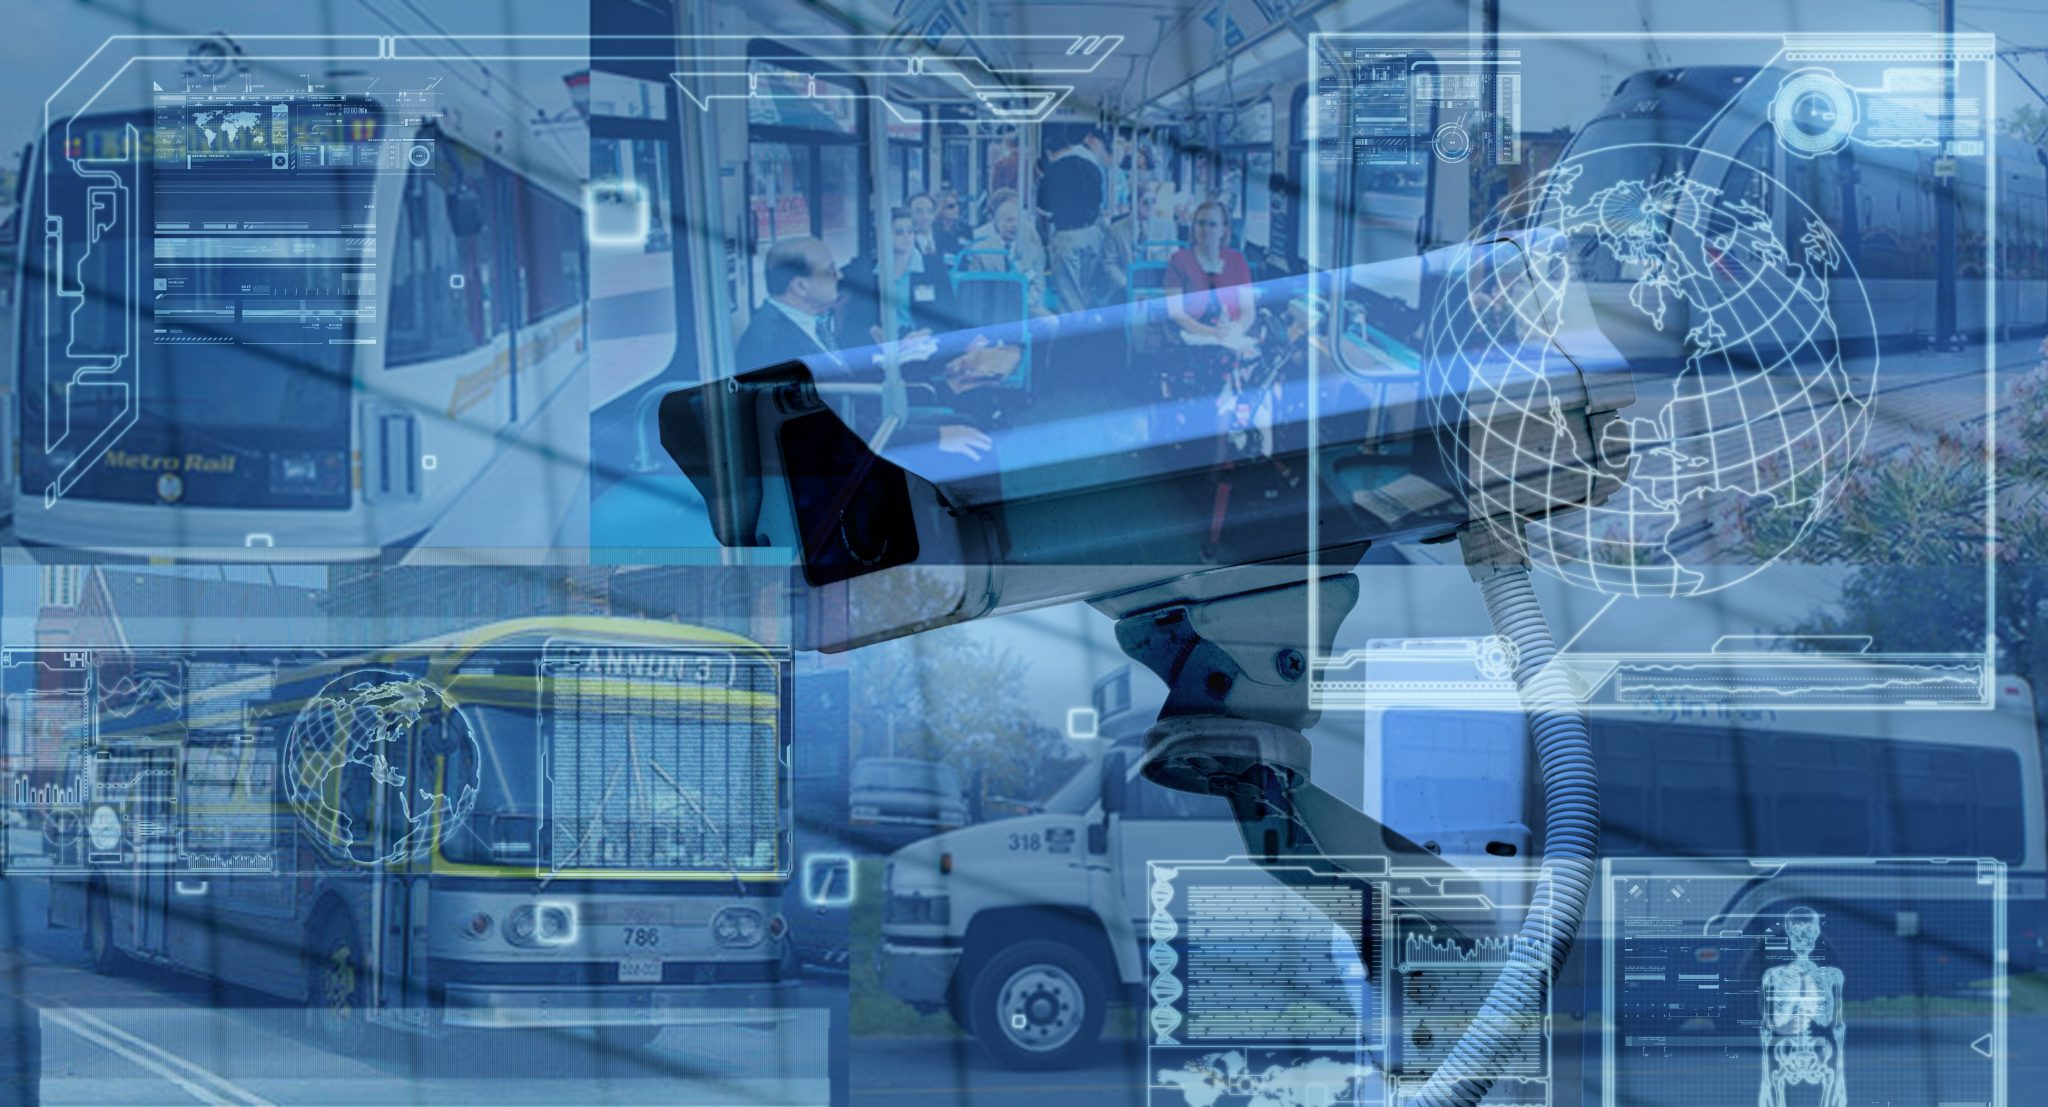 5 Use Cases Of Video Analytics In Public Transportation